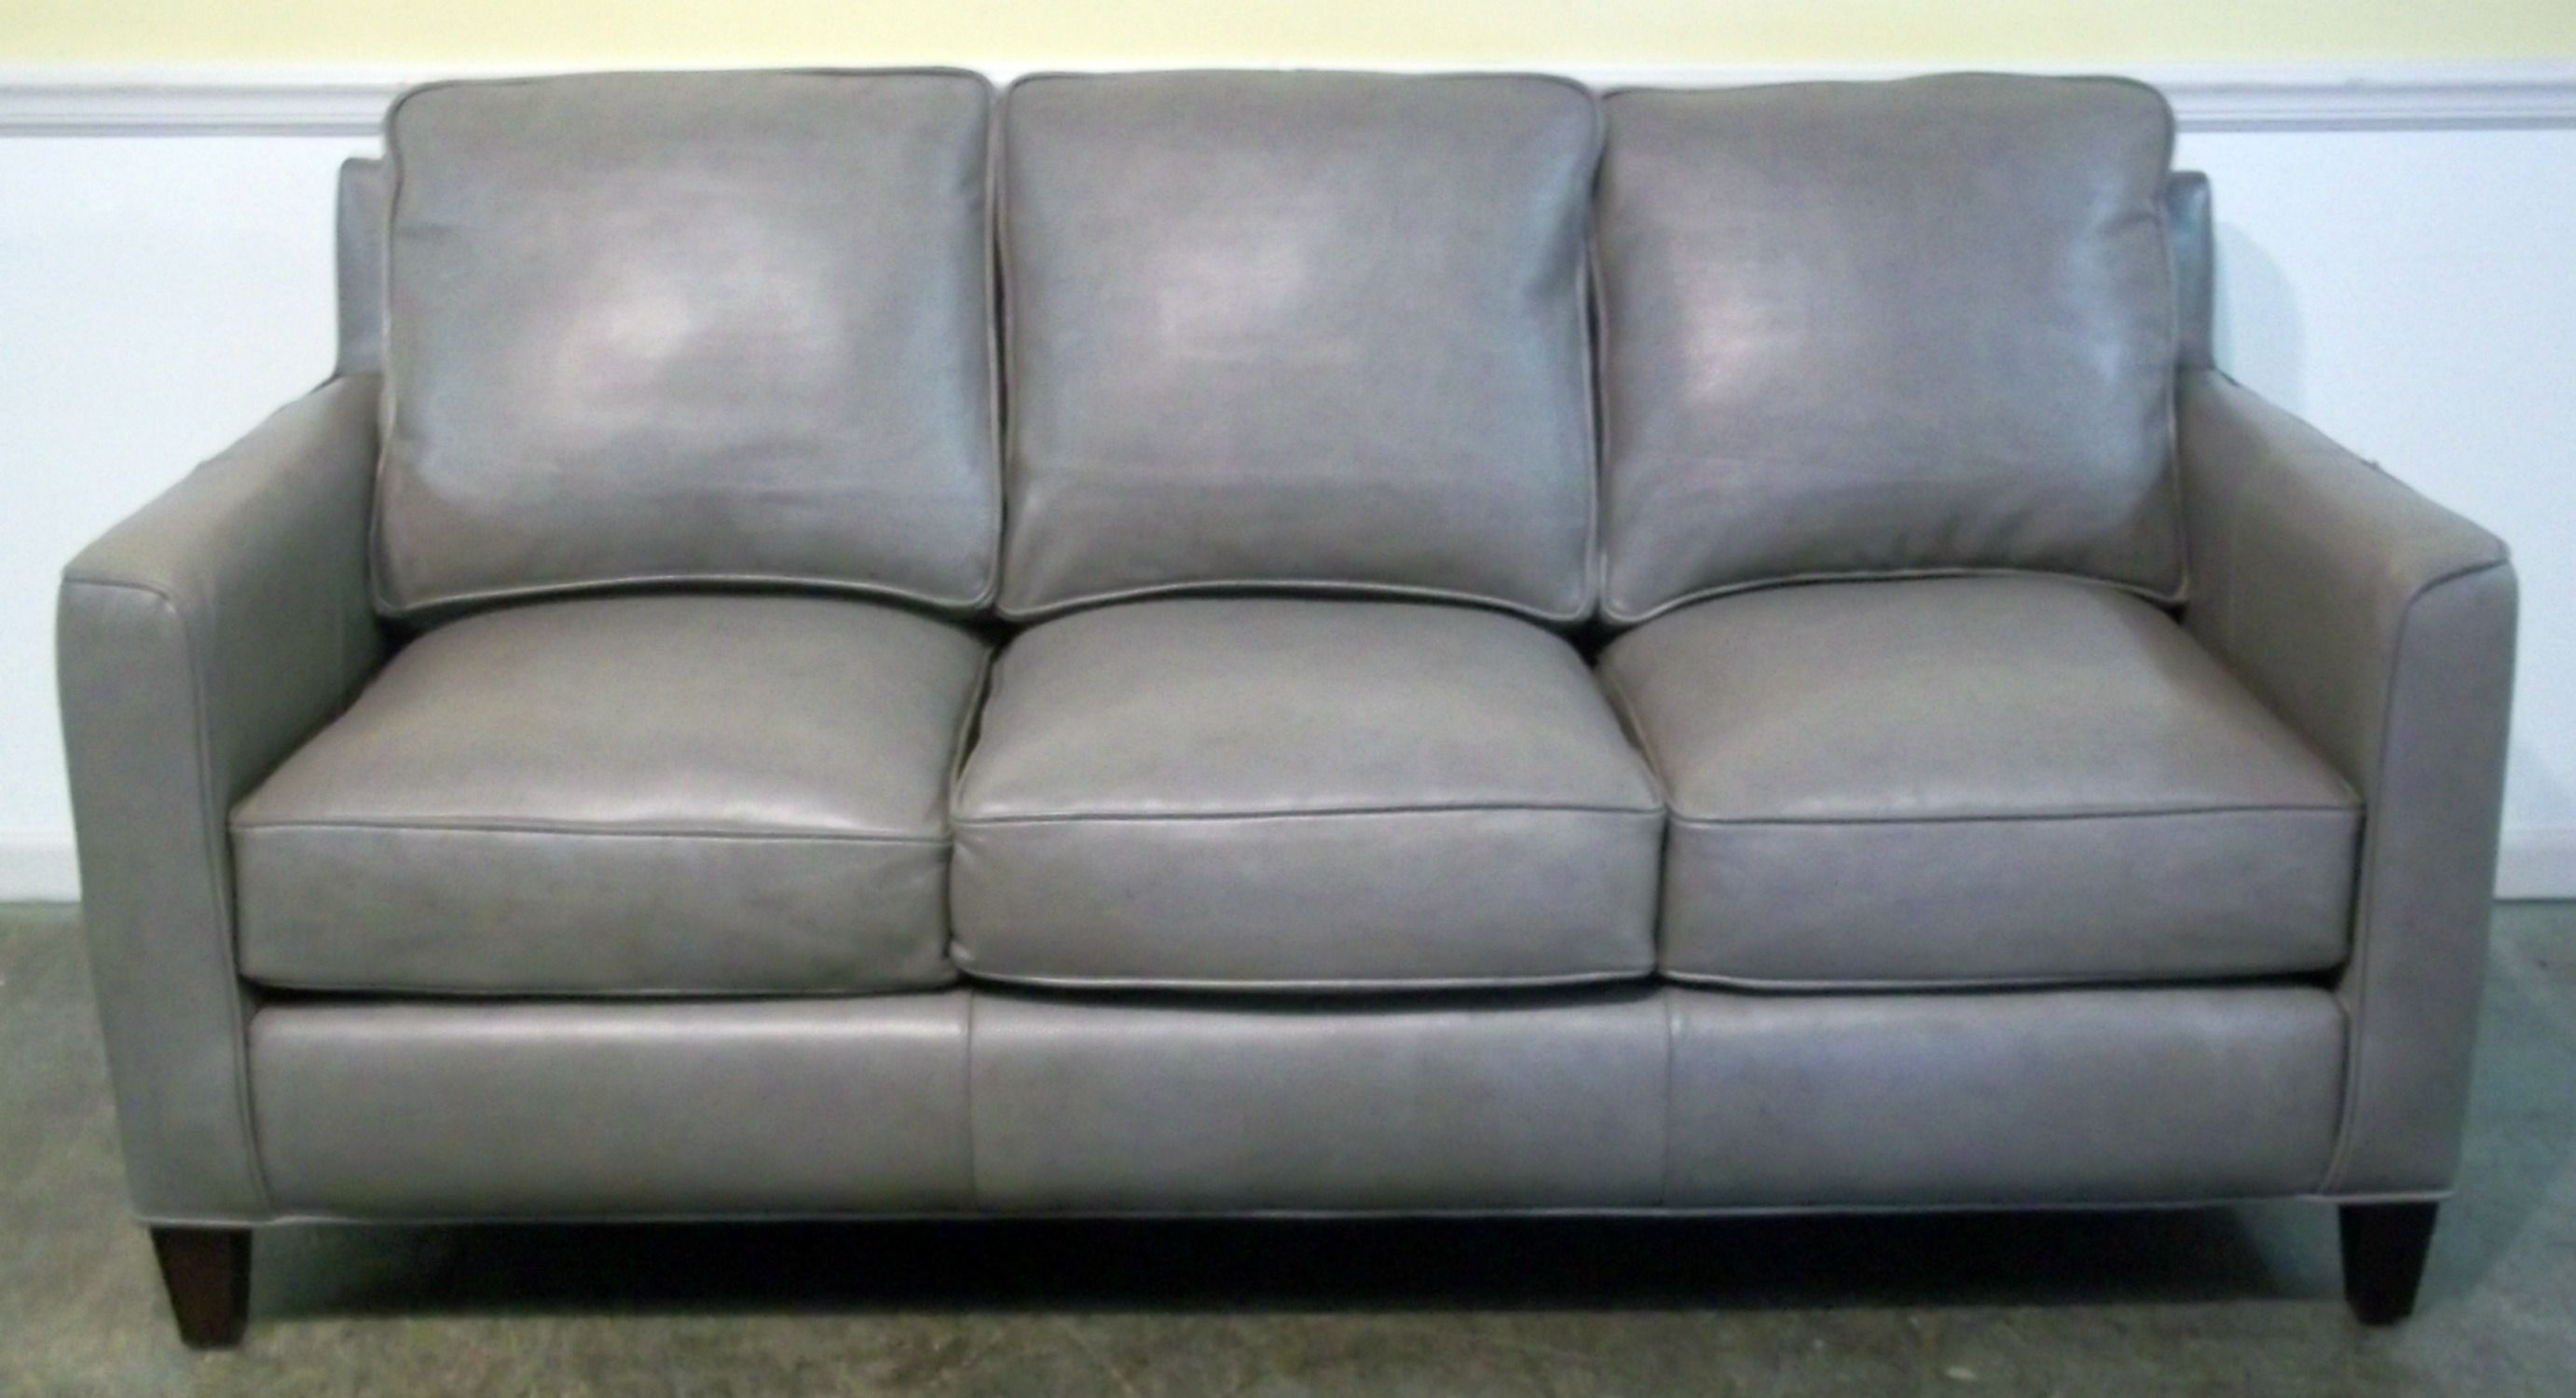 trim home couch height and leather qlt pleather products jpg faux width on prod hei percentpadding wid threshold